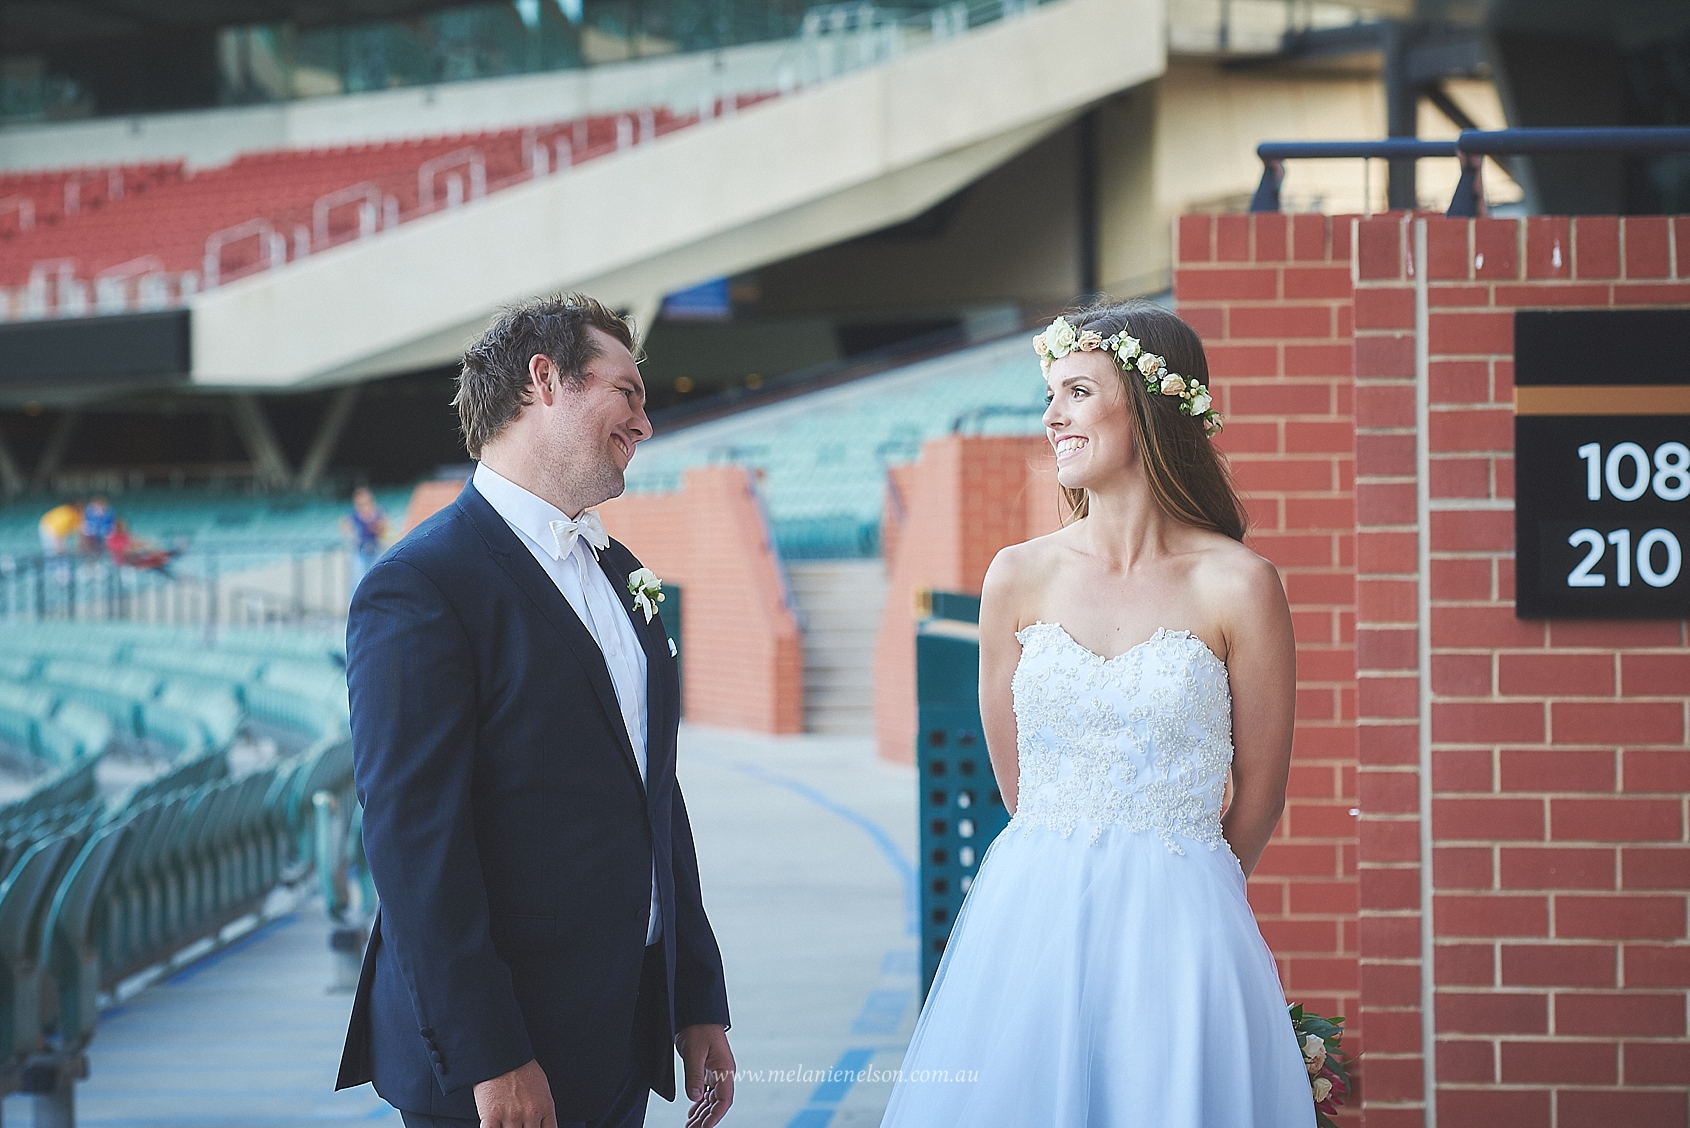 adelaide_oval_wedding_photography25.jpg